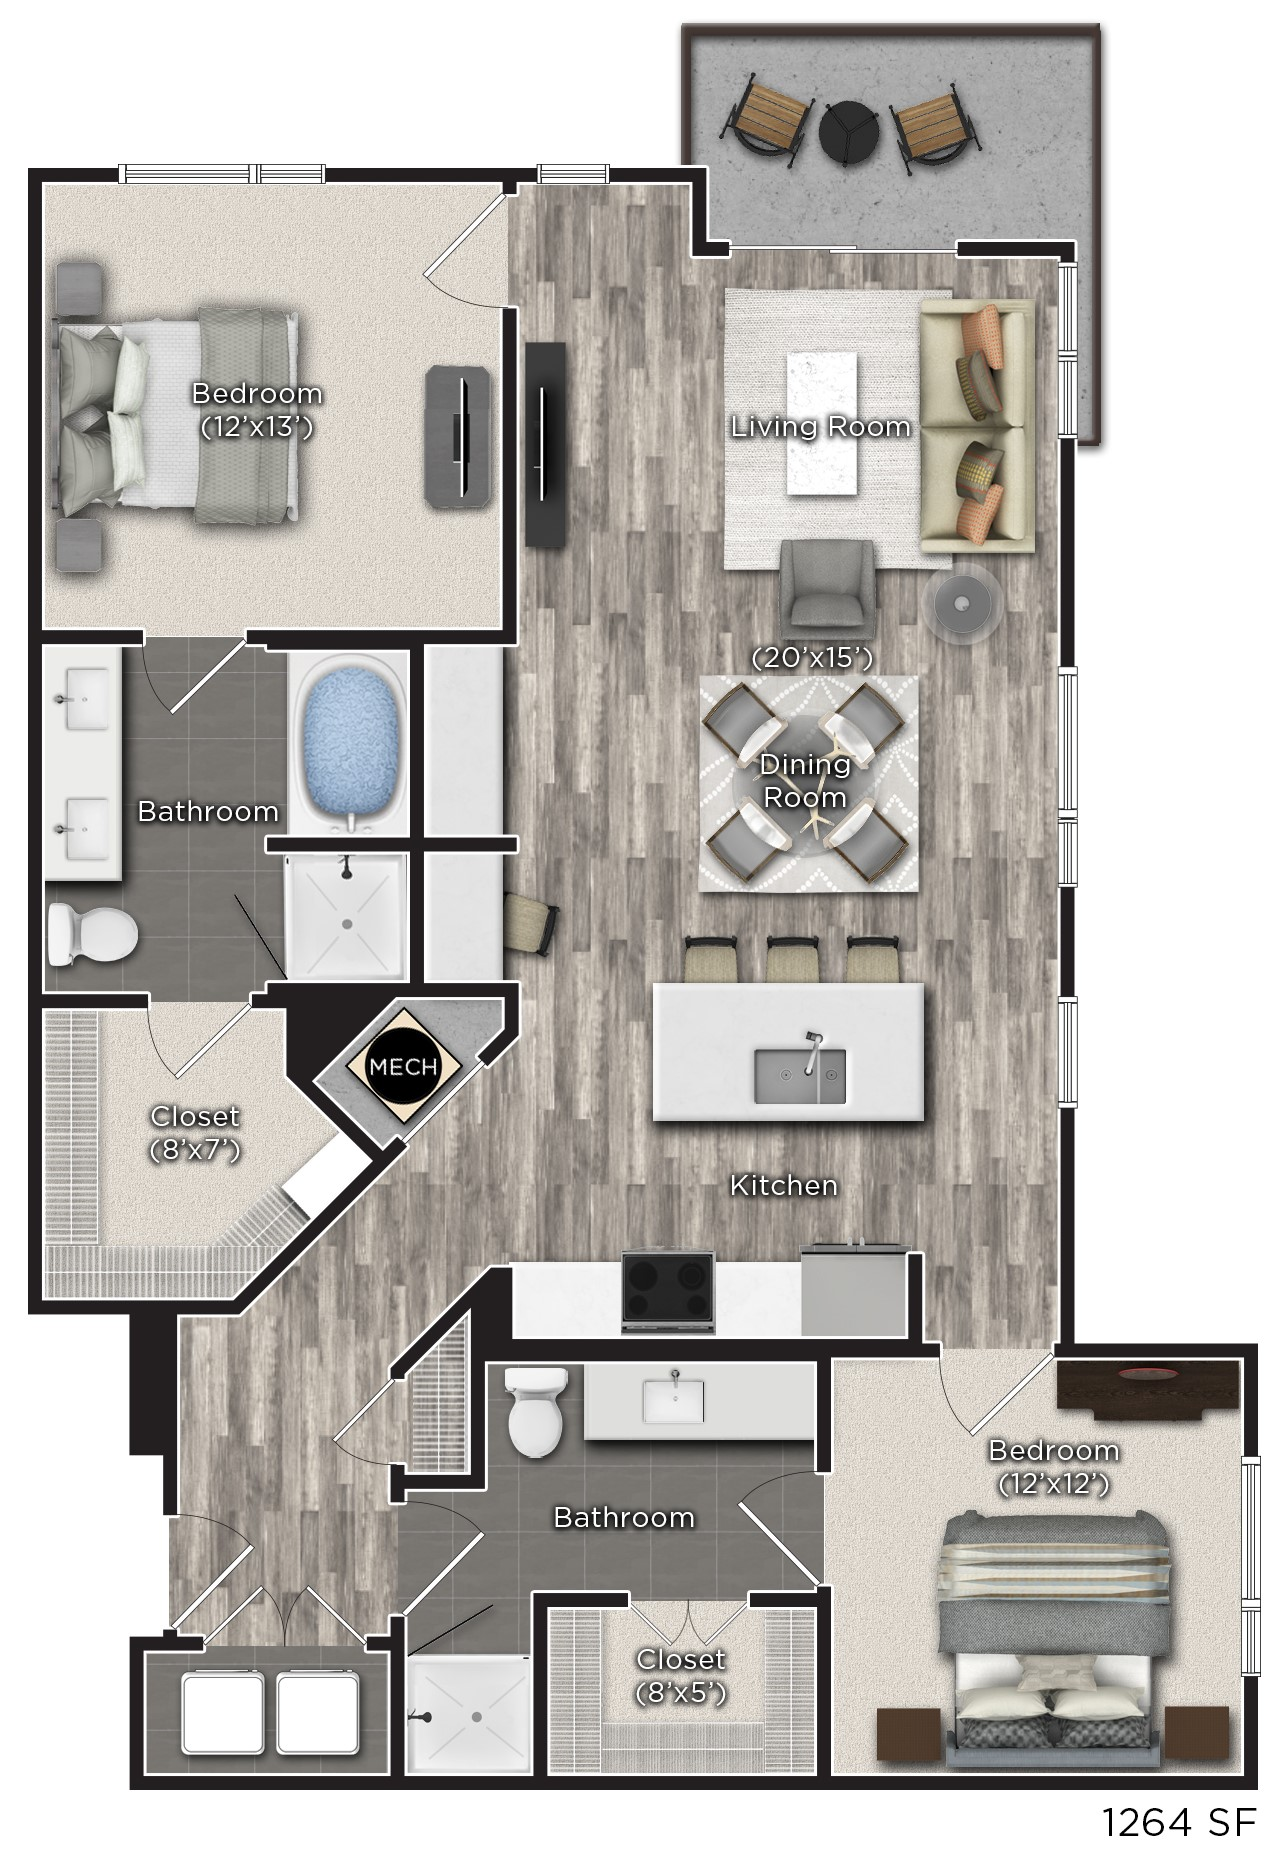 Tens on West - Floorplan - T